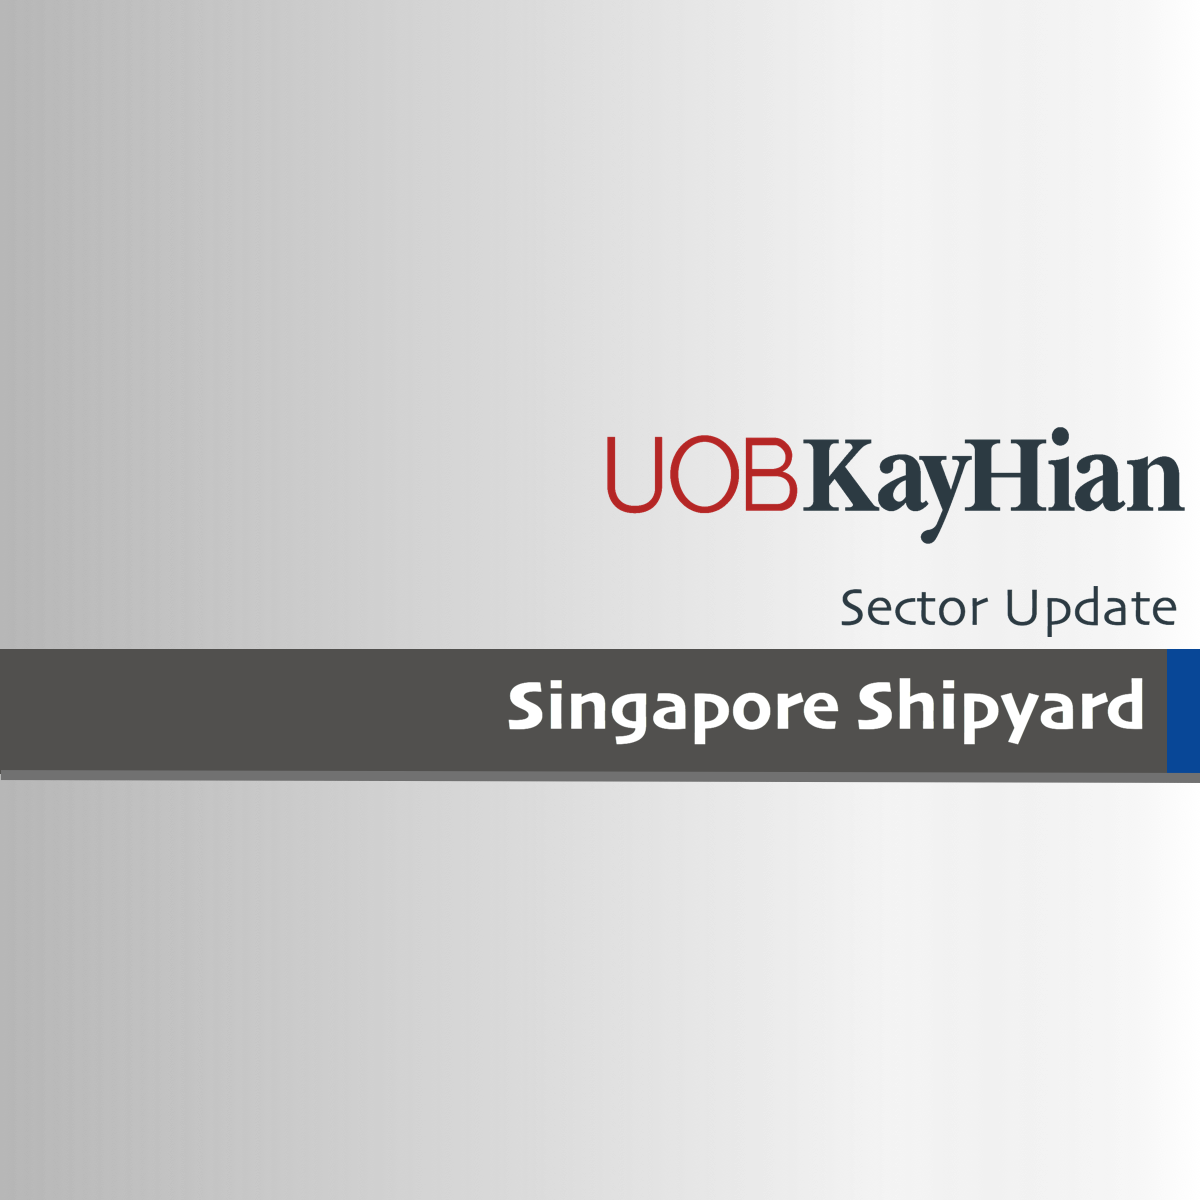 "Singapore Shipyard - UOB Kay Hian 2016-12-07: Ride The Waves of ""Recovery"" For Now As Land Remains Out Of Sight"